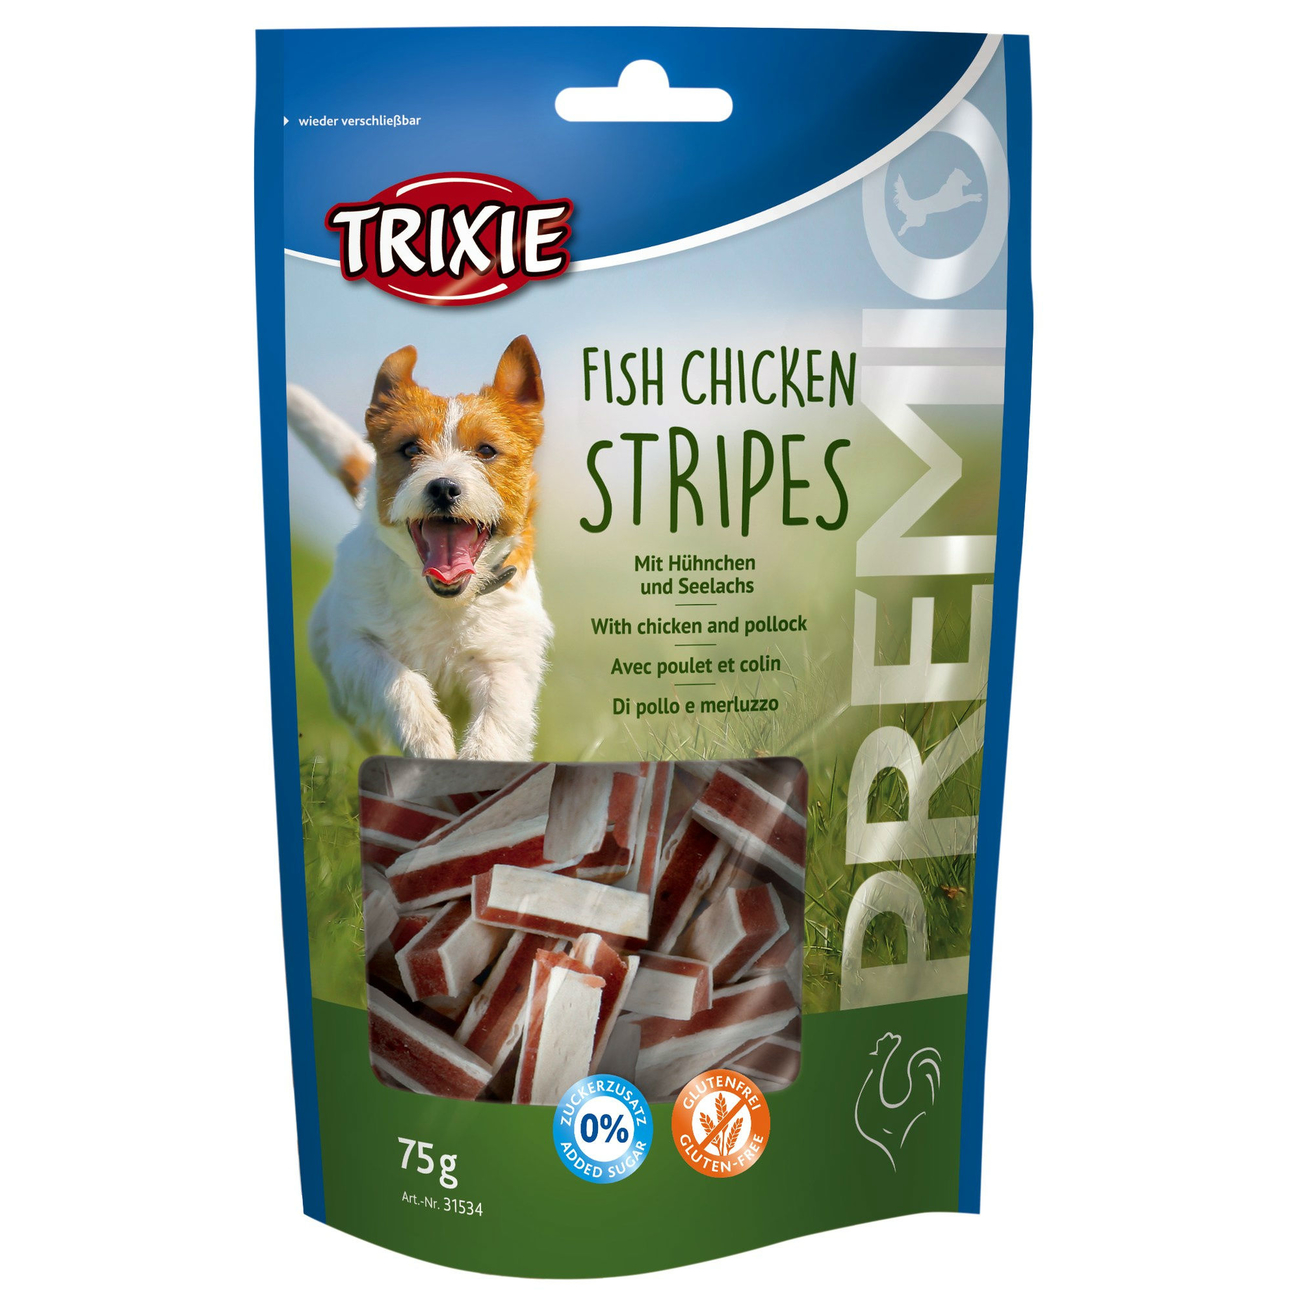 Trixie Premio Fish Chicken Hundesnack 31535, Bild 3